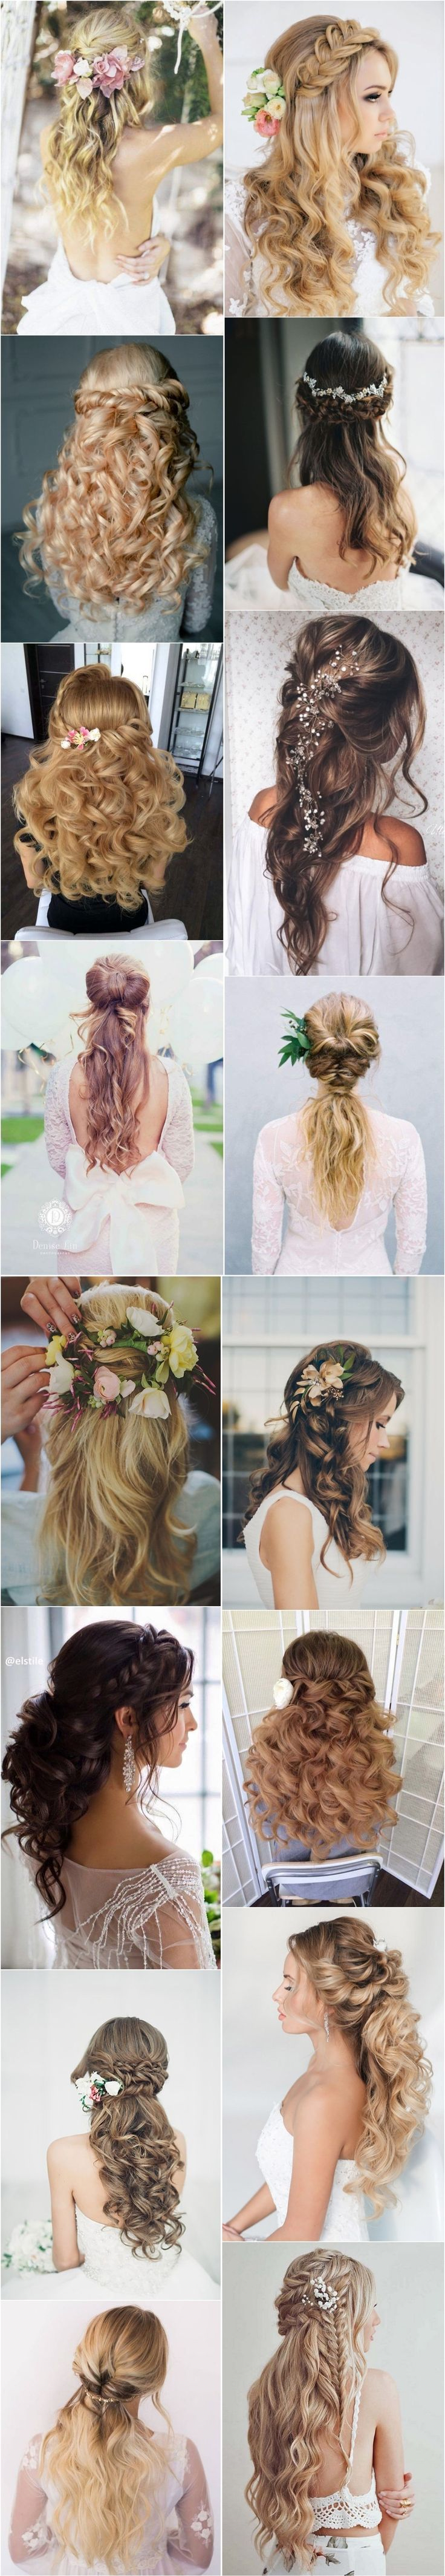 http://www.deerpearlflowers.com/15-stunning-half-up-half-down-wedding-hairstyles-with-tutorial/